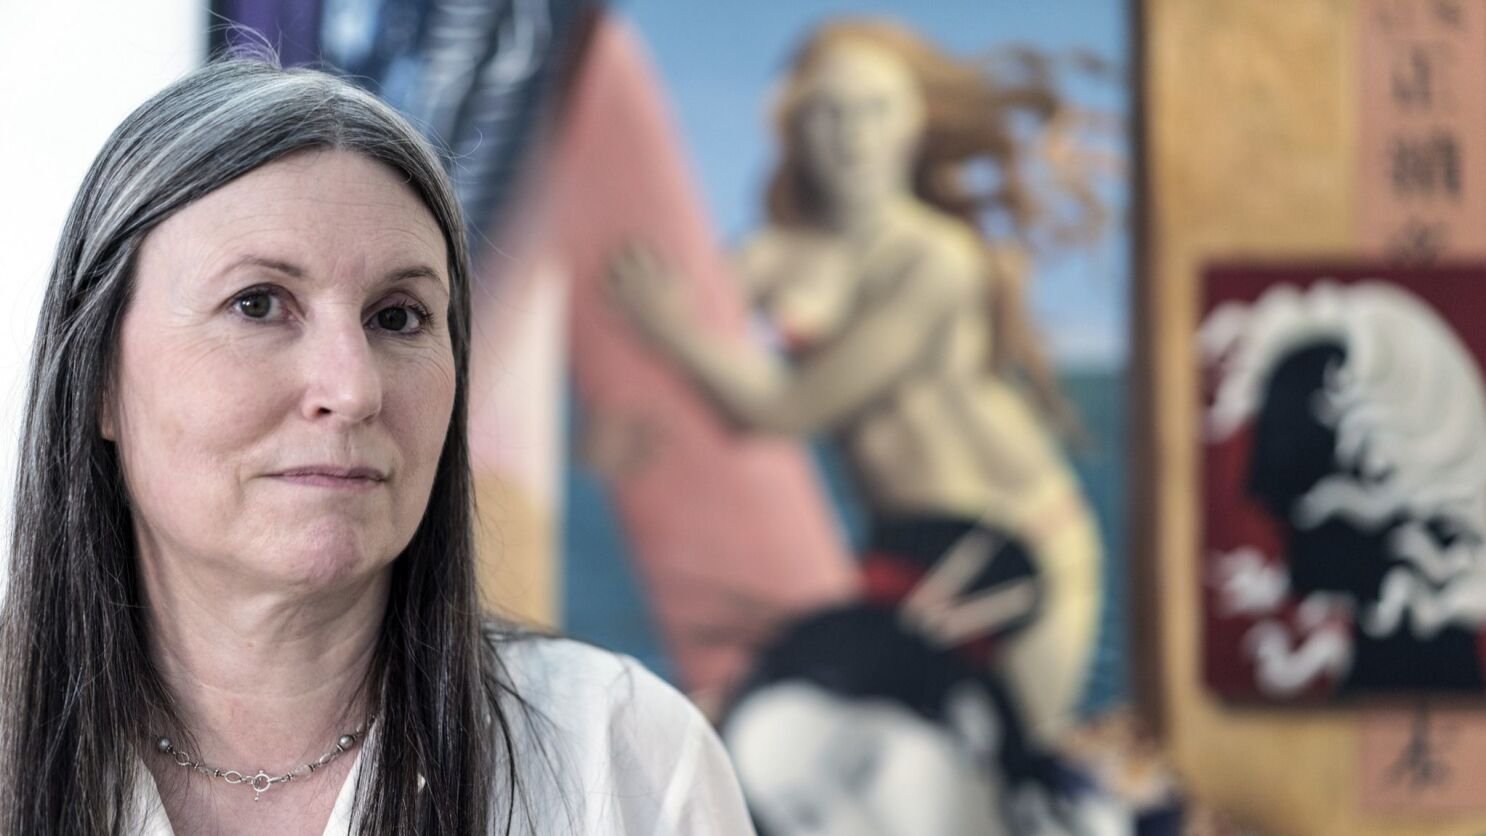 fffee51f0 Seattle-based artist Gabrielle Bakker, in residence at Lux Art Institute,  paints classical characters in contemporary settings - The San Diego  Union-Tribune